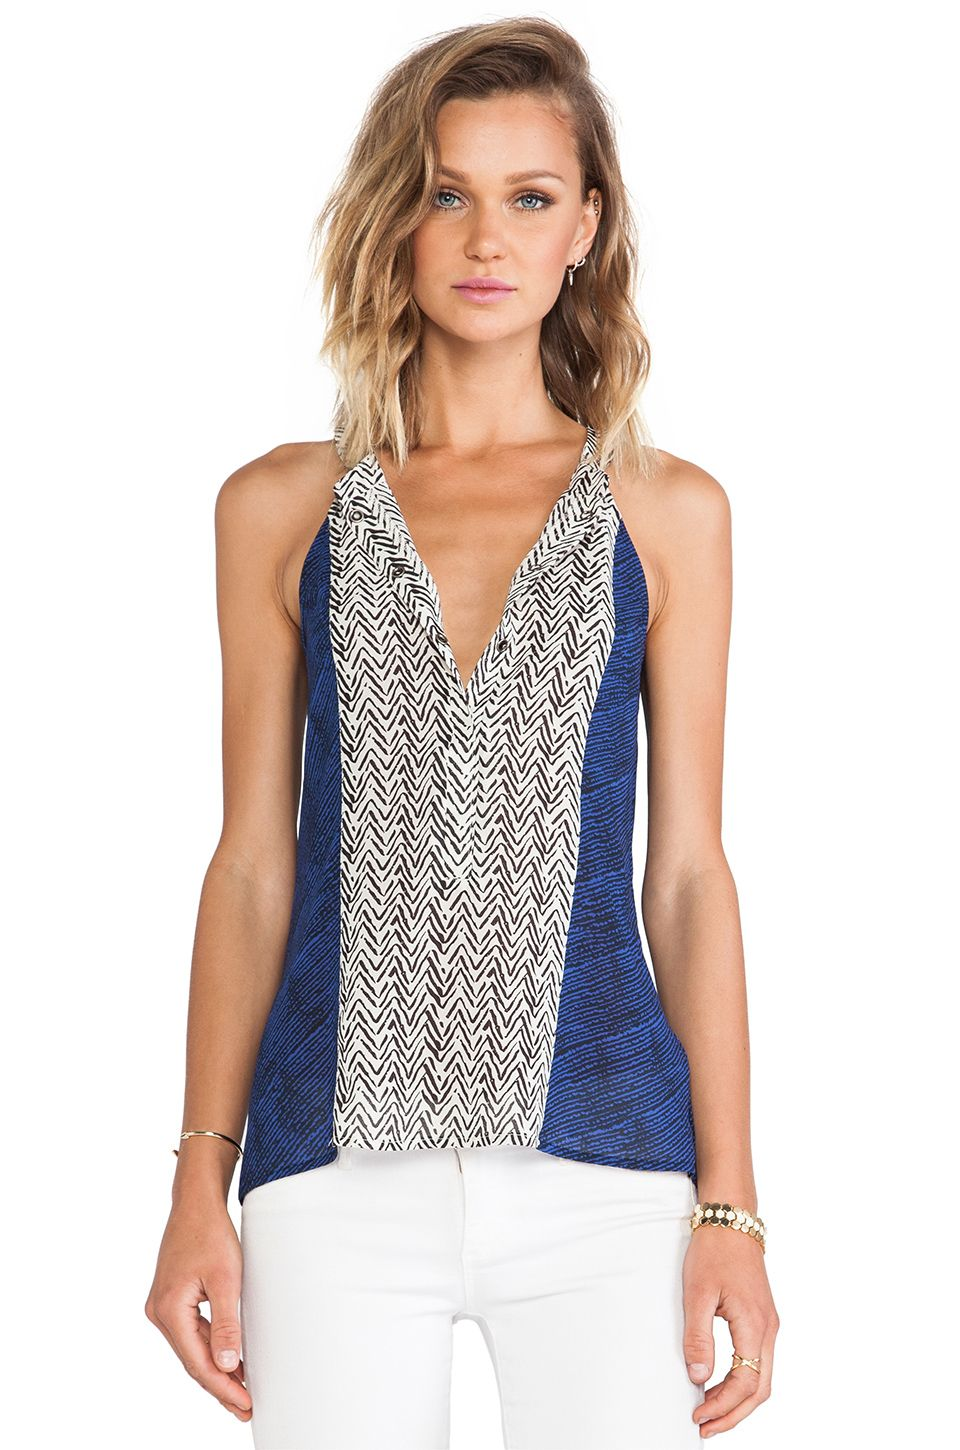 Sanctuary Anthropologie Pretty Collage Cami in Blue & White Print sz S